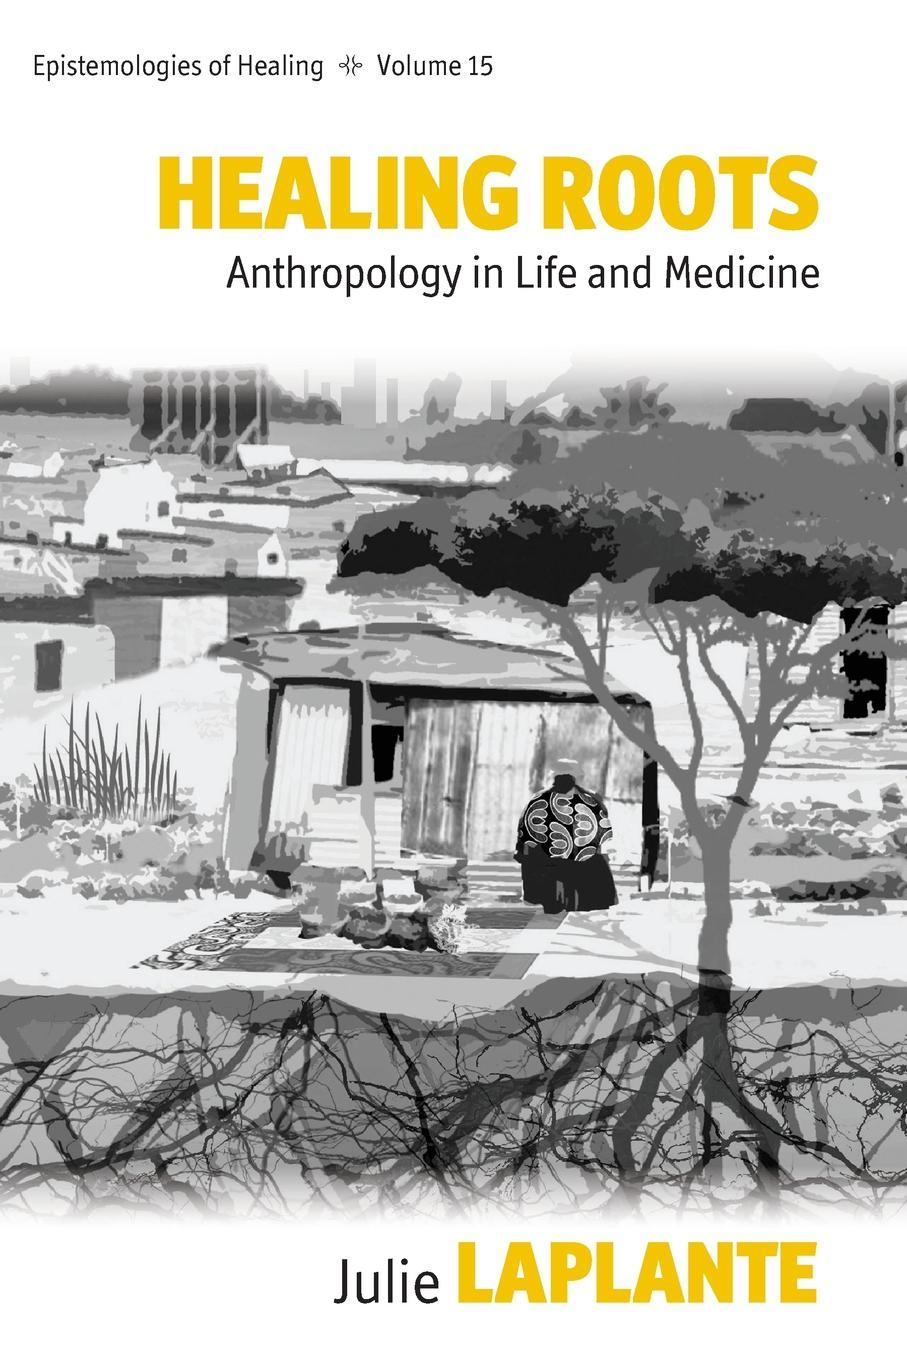 Julie Laplante. Healing Roots. Anthropology in Life and Medicine